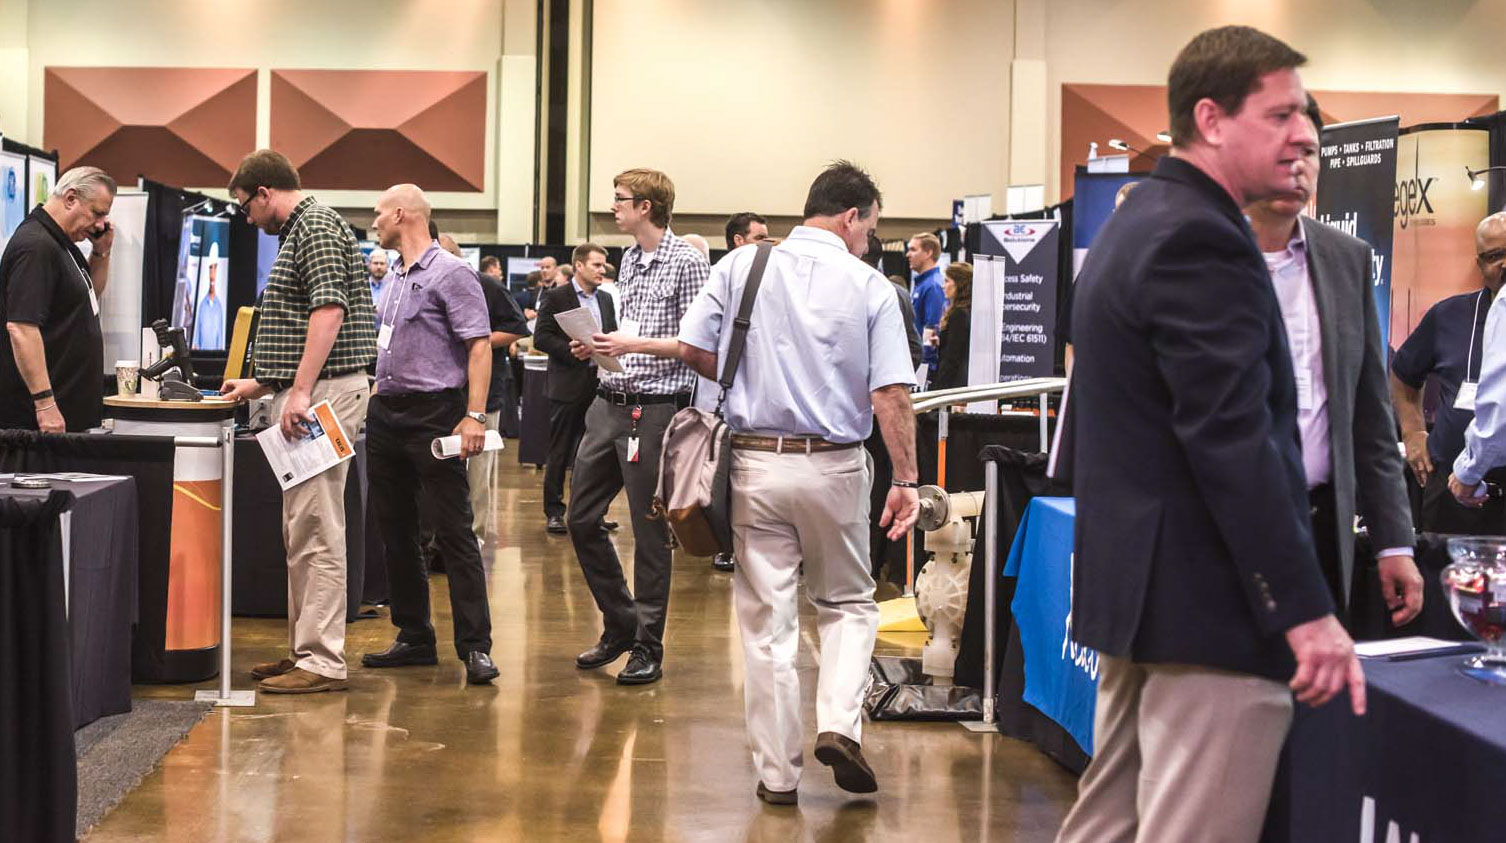 Attendees thronged the exhibit floor to examine equipment, gather information and build working relationships. More than 200 vendors presented products and services.